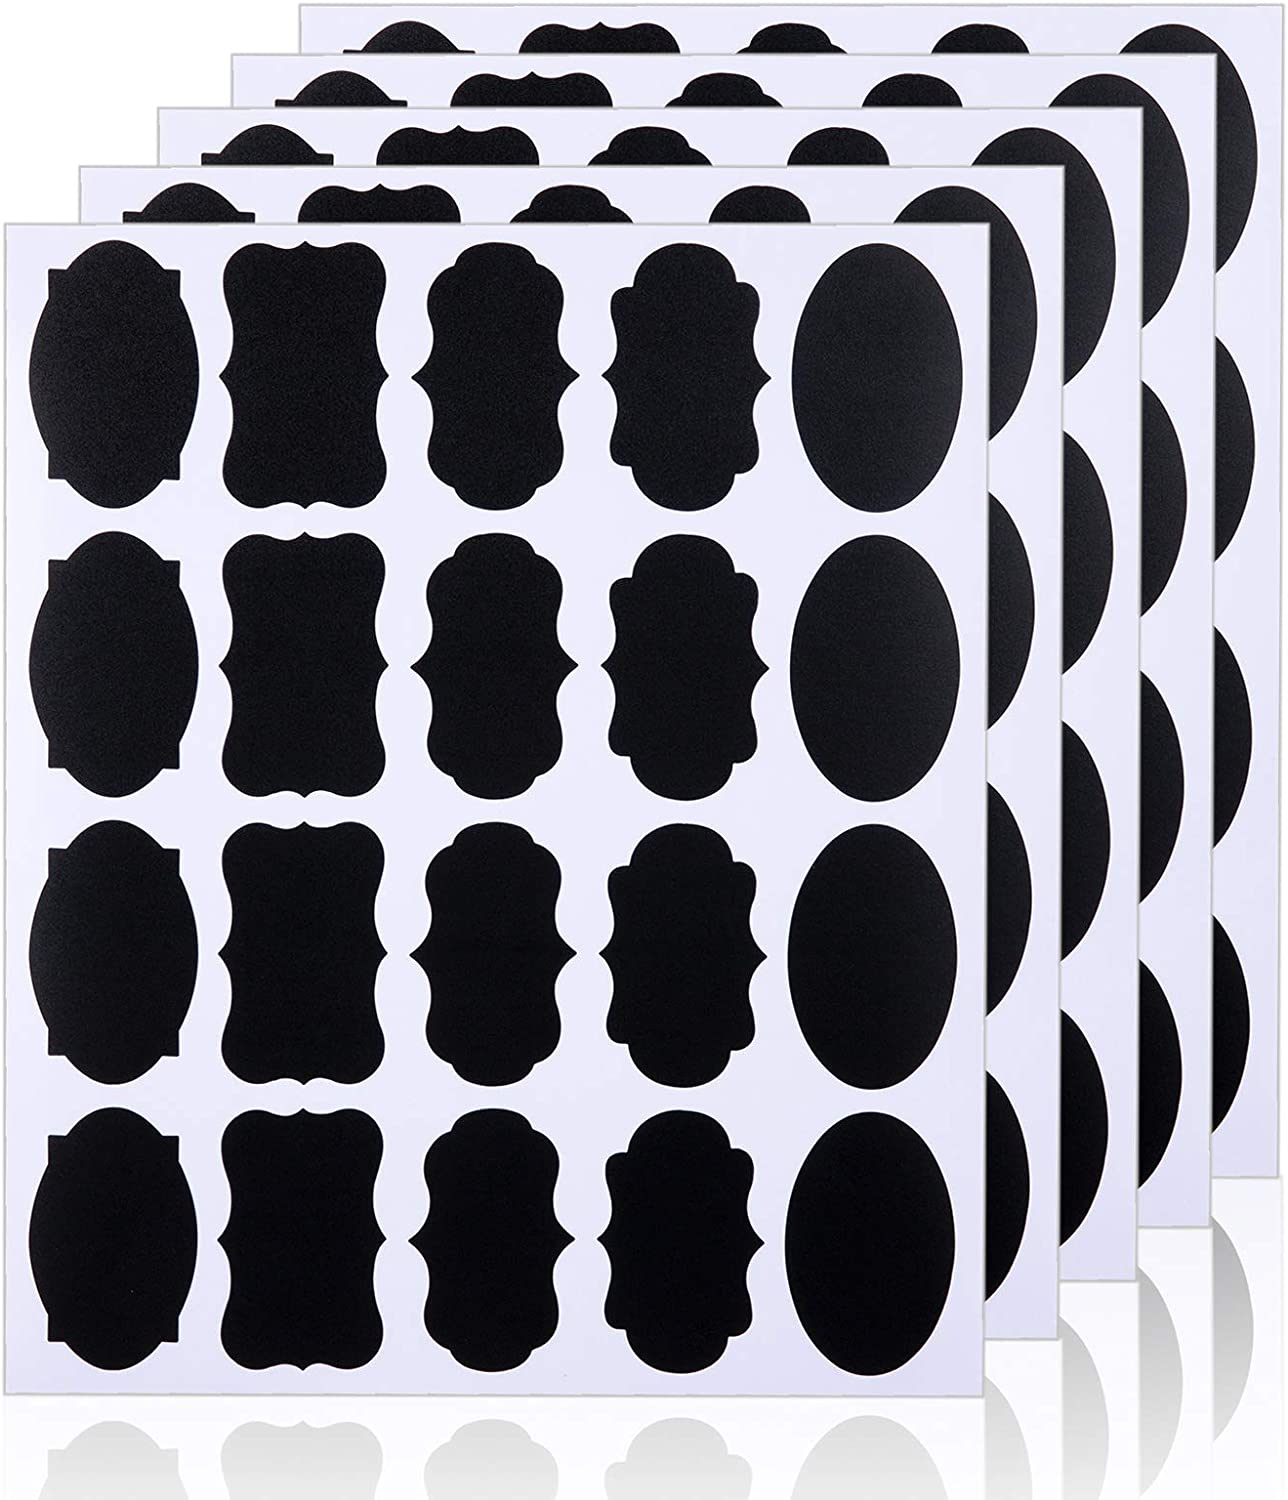 CNJ 200 Chalkboard Labels Stickers for Food Jars, Spice, Glass, Cups, Bottles, Containers and Canisters, Decorative Reusable Waterproof Blackboard Labels - 10 Sheet (200Pcs)